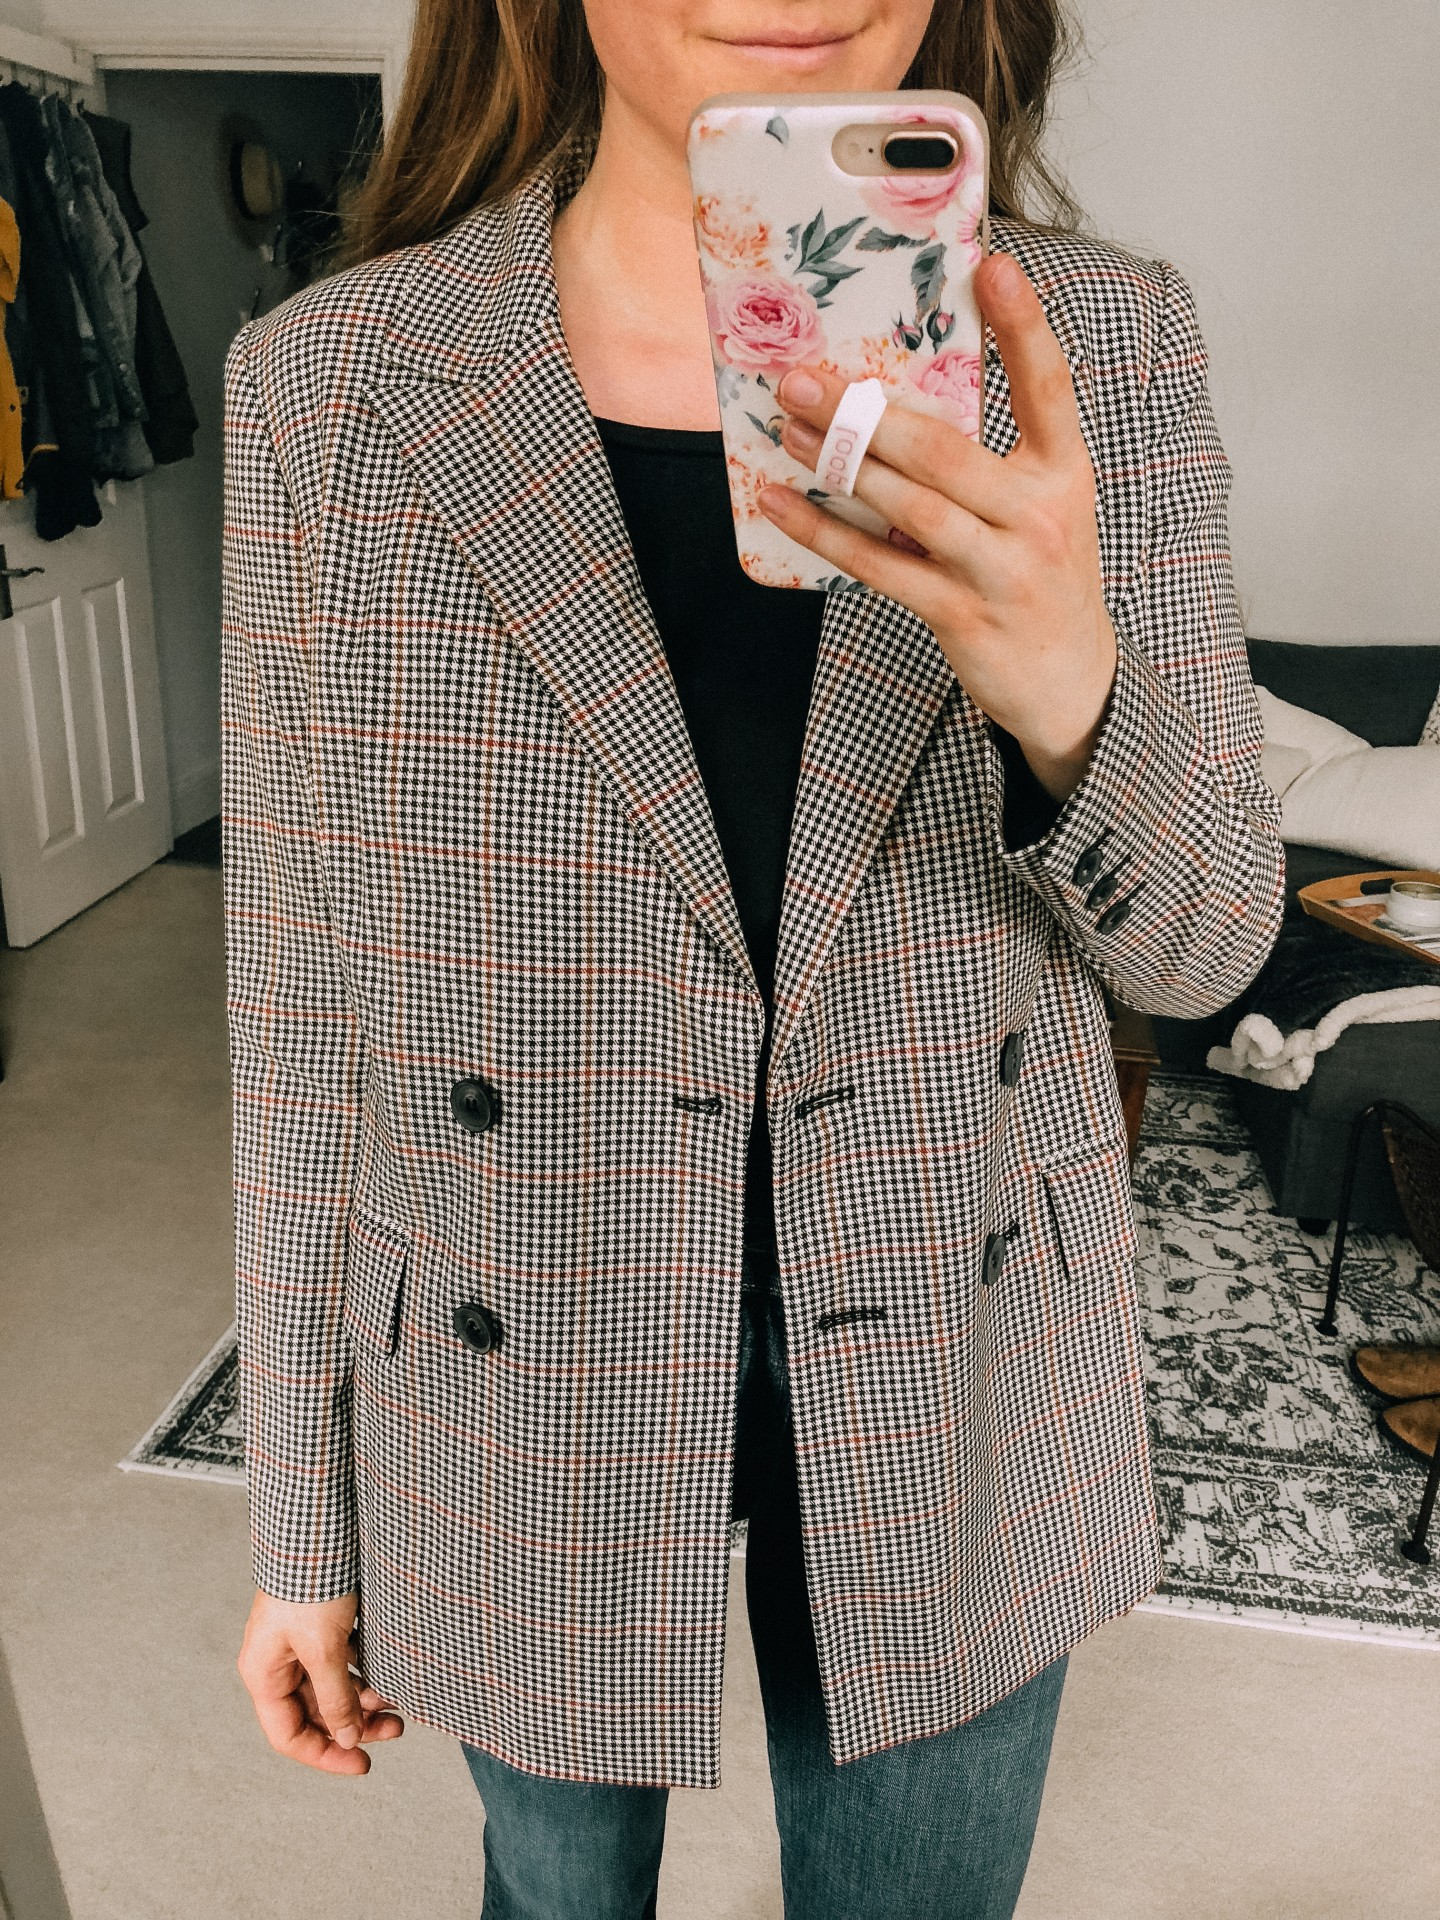 Lifestyle blogger Mollie Moore shares a Nordstrom Anniversary Sale try on haul featured by popular London style blogger, Mollie Moore